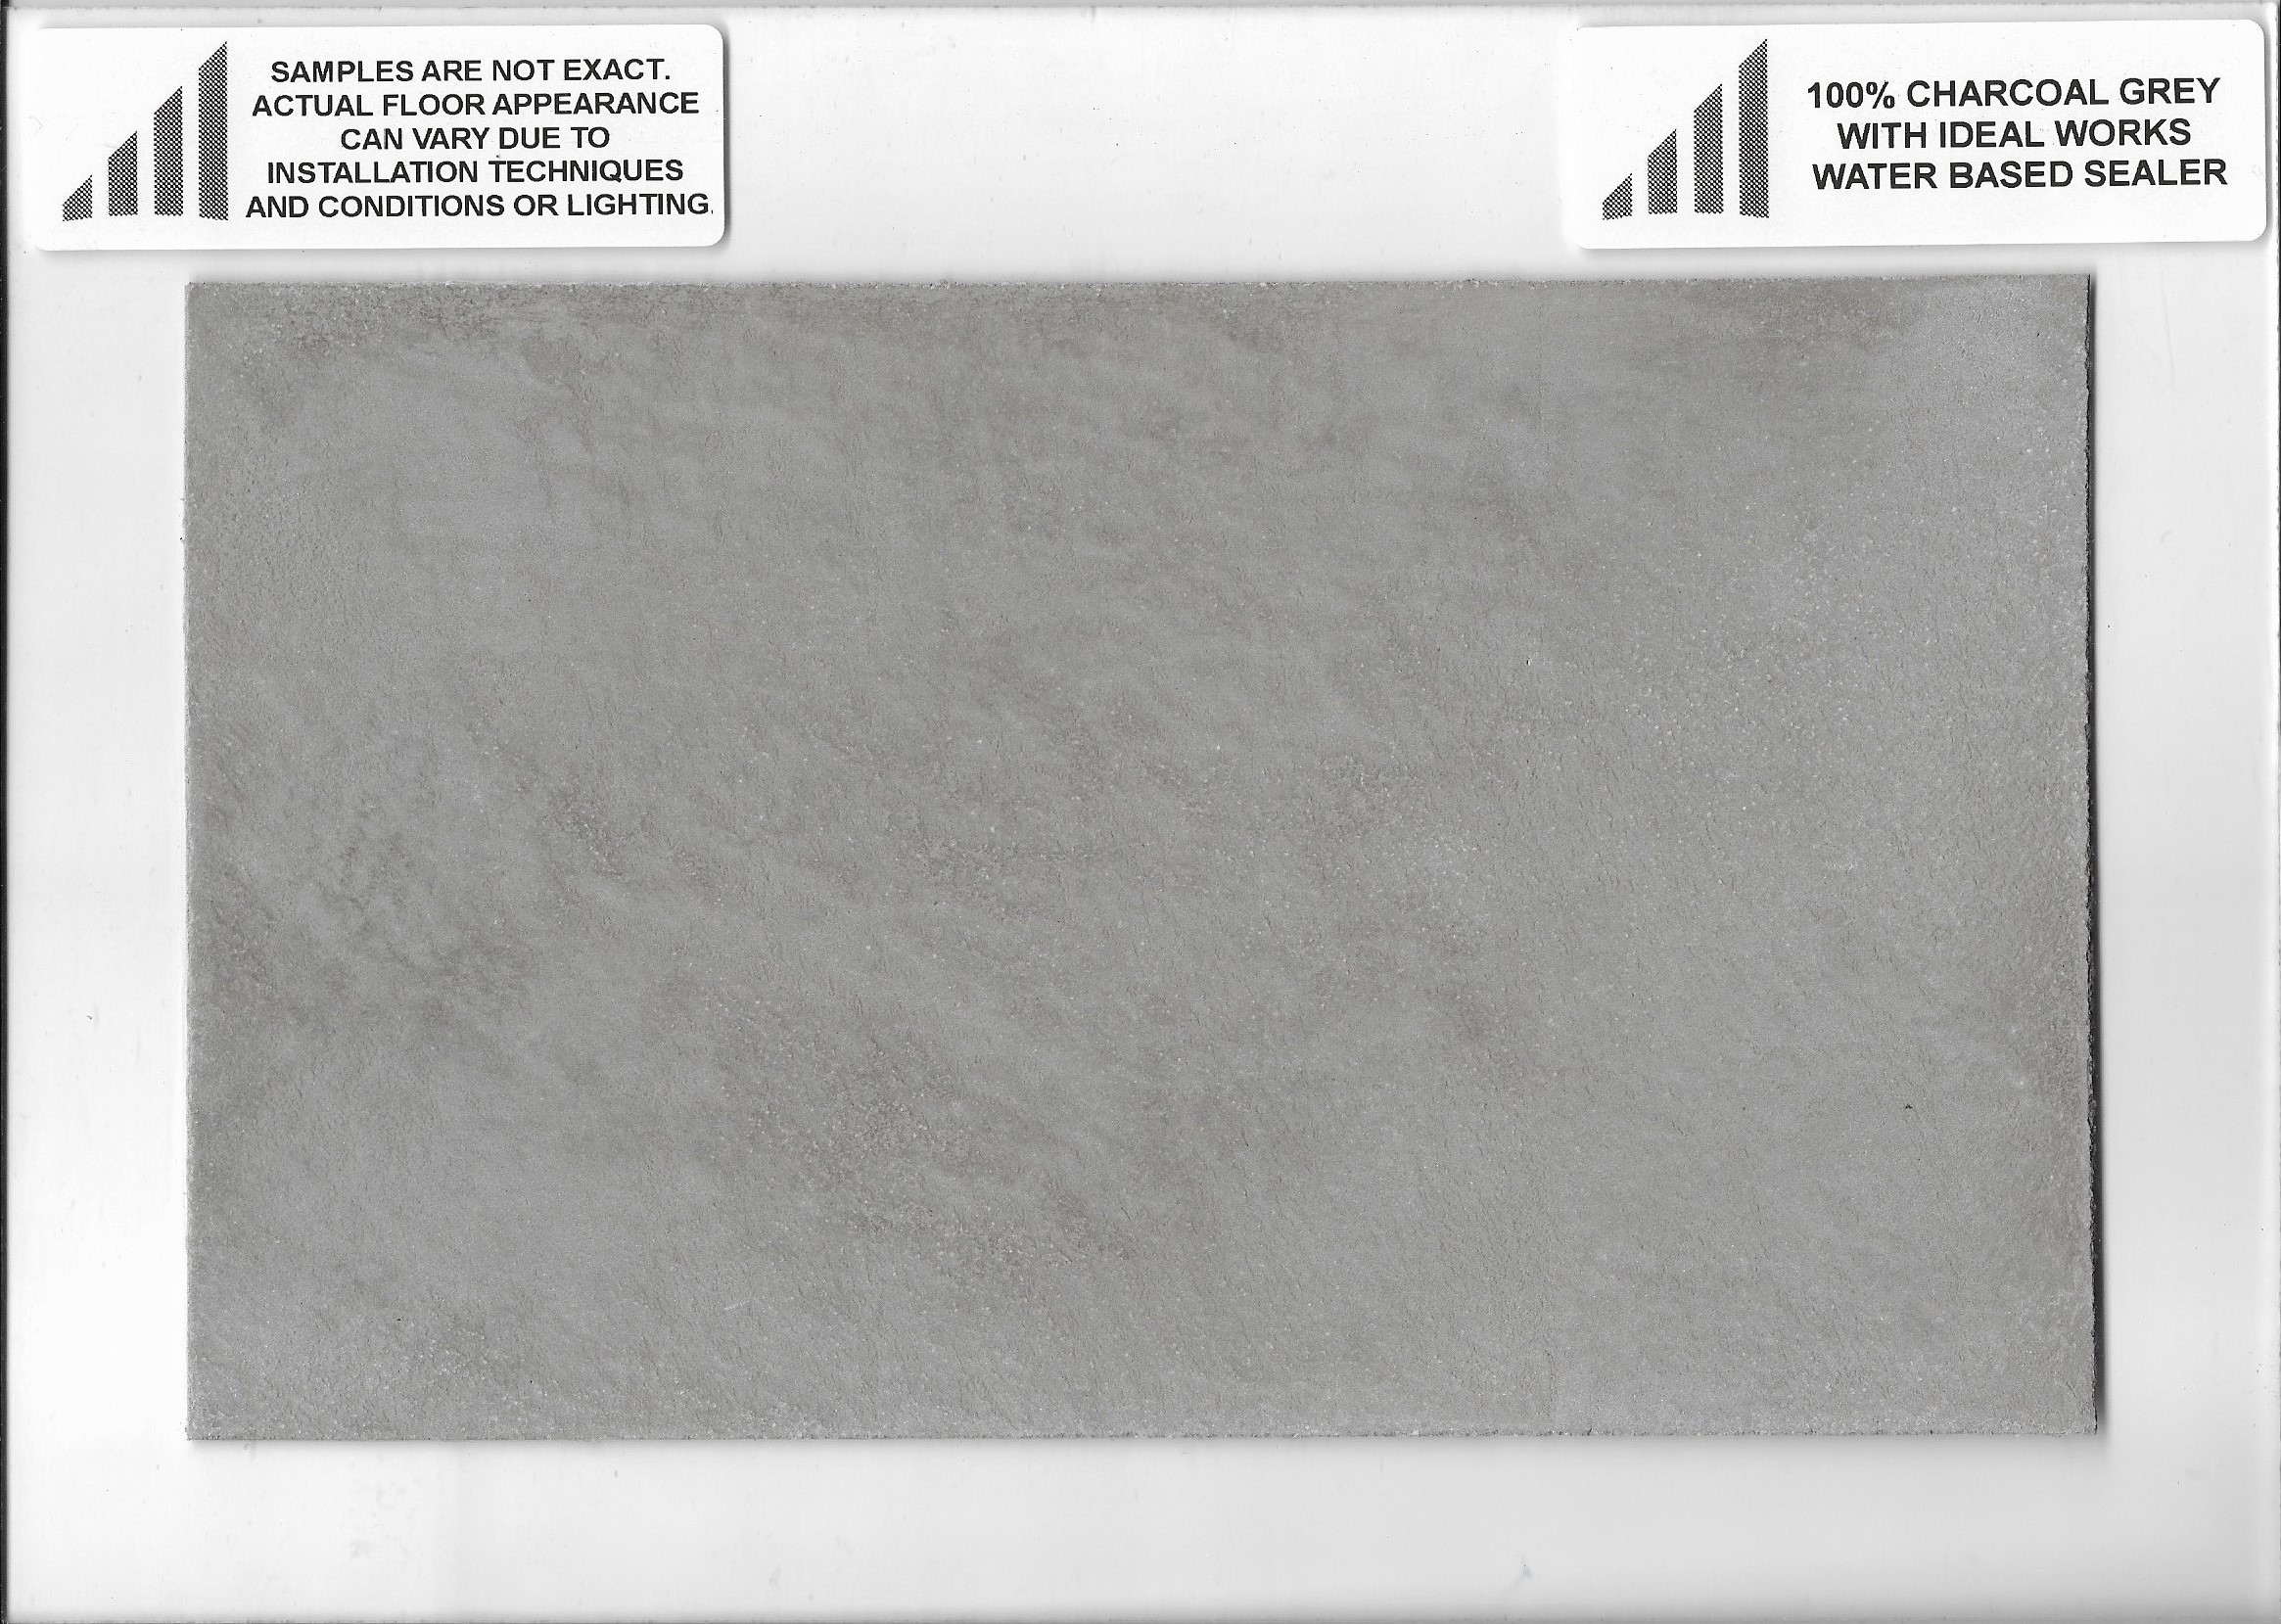 400-100 Percent Charcoal Grey with WB Sealer.jpg